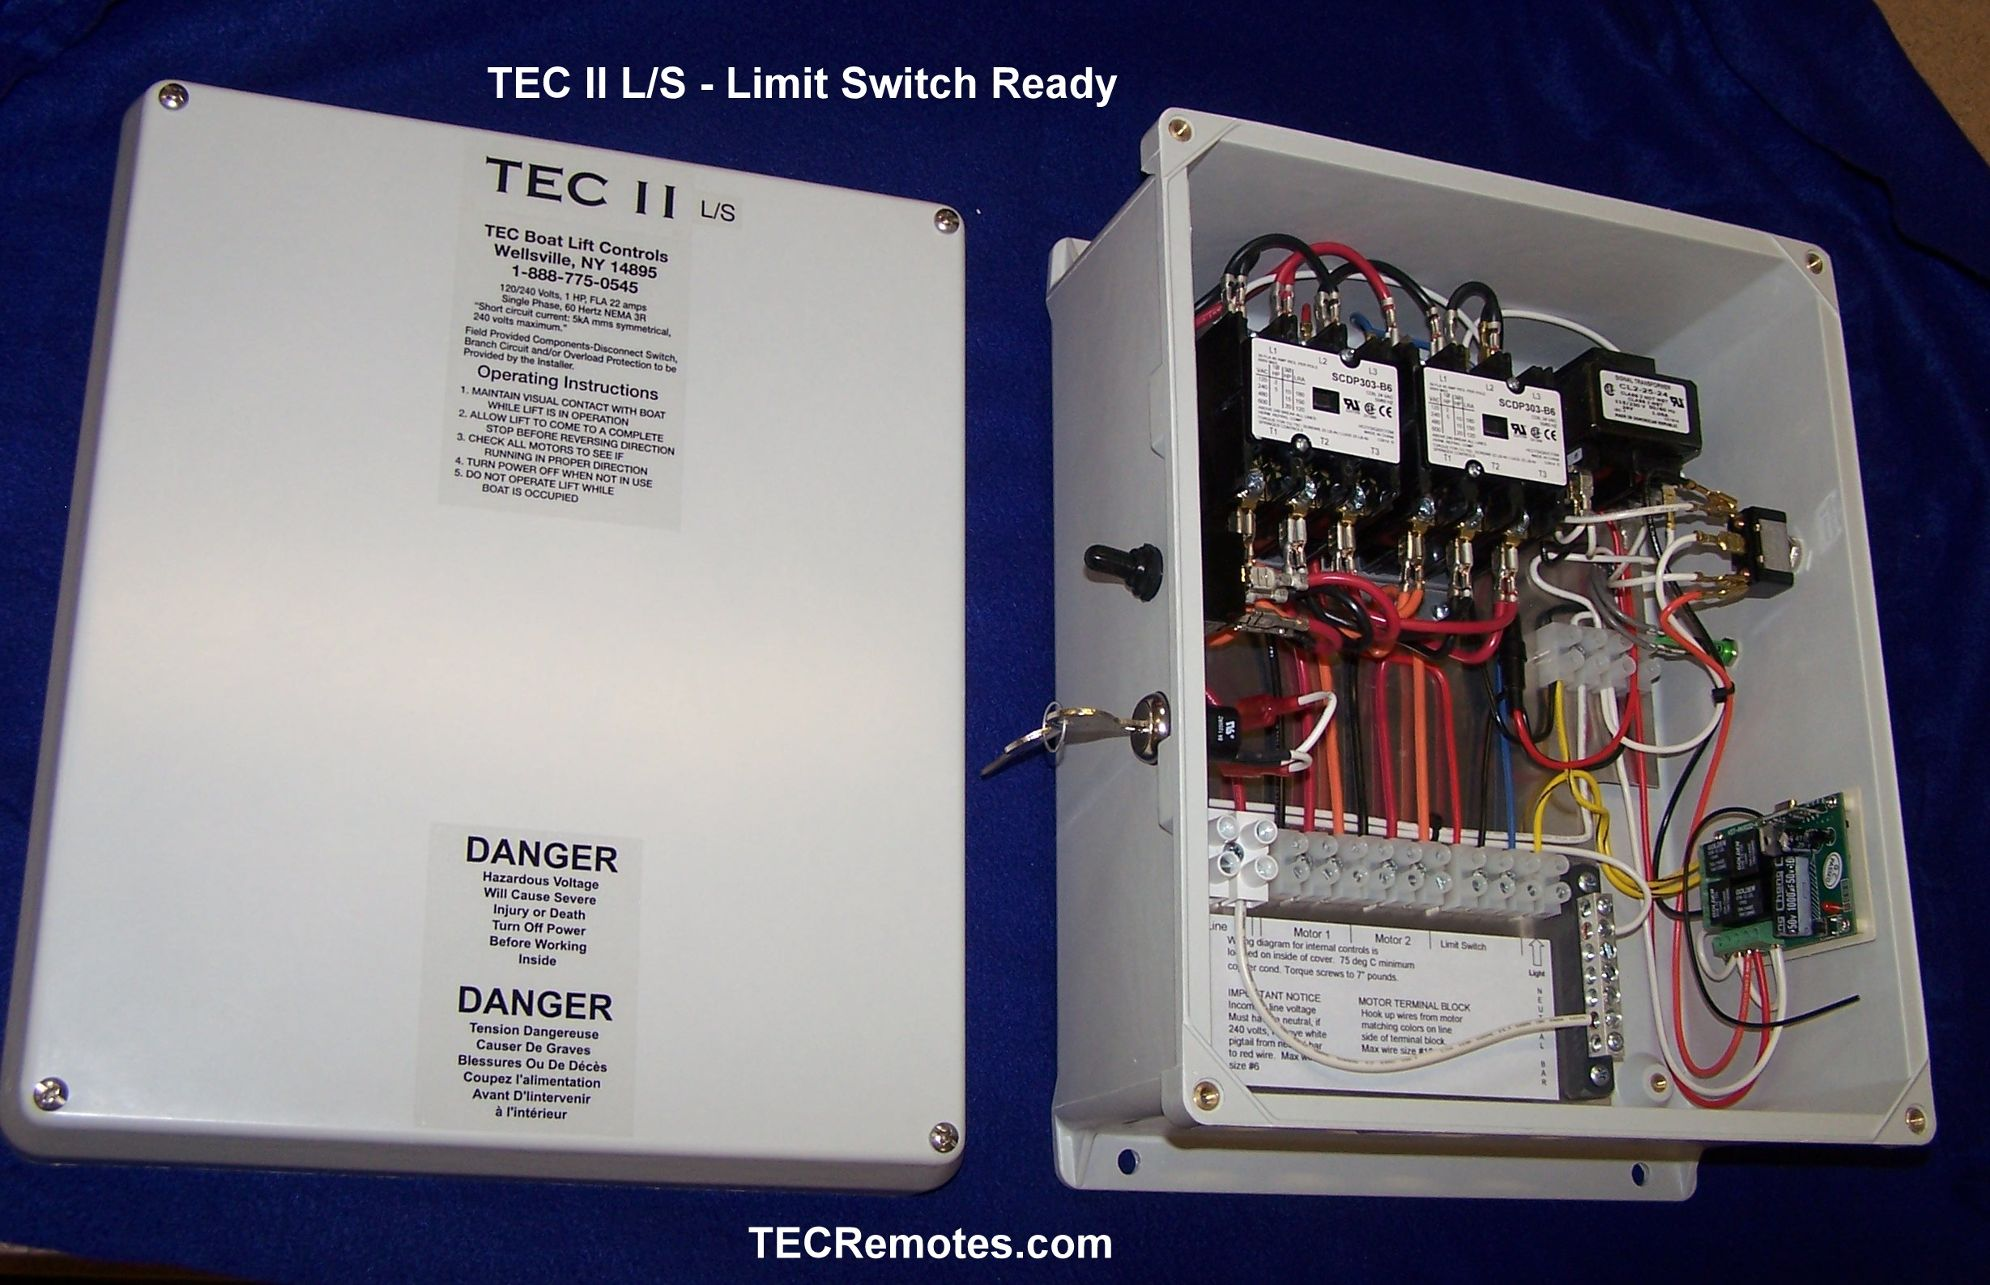 hight resolution of tec ii l s limit switch ready two motor remote